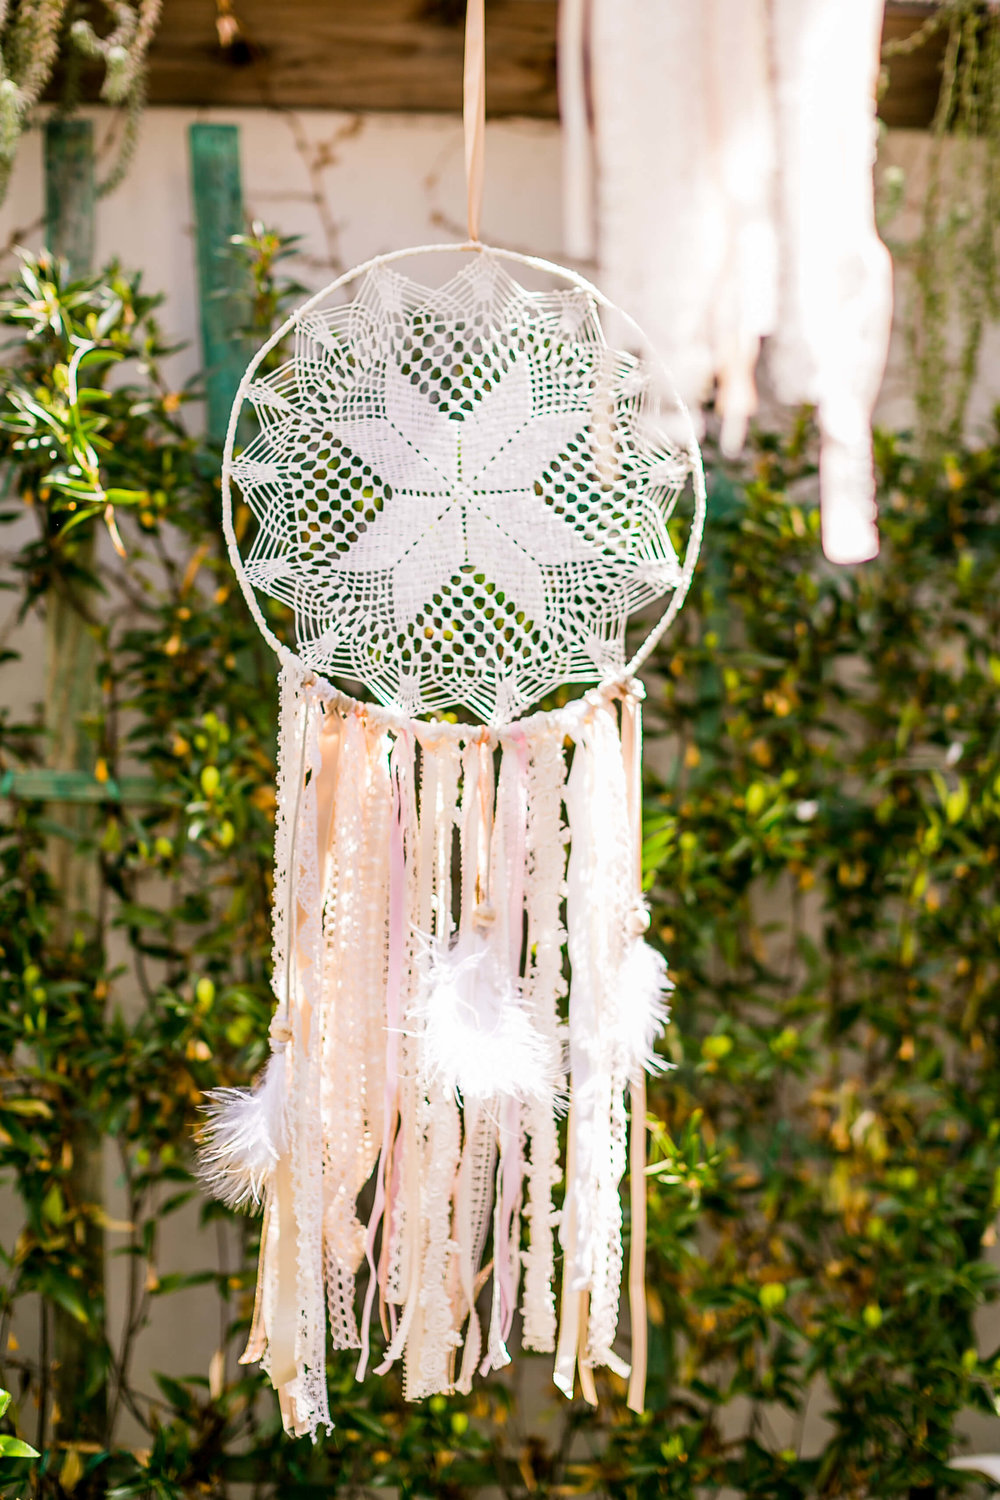 Bohemian Dream Catcher 1 - Provenance Vintage Rentals Los Angeles Boho Decor Rentals Vintage Wedding Decor Party Rentals Specialty Rentals